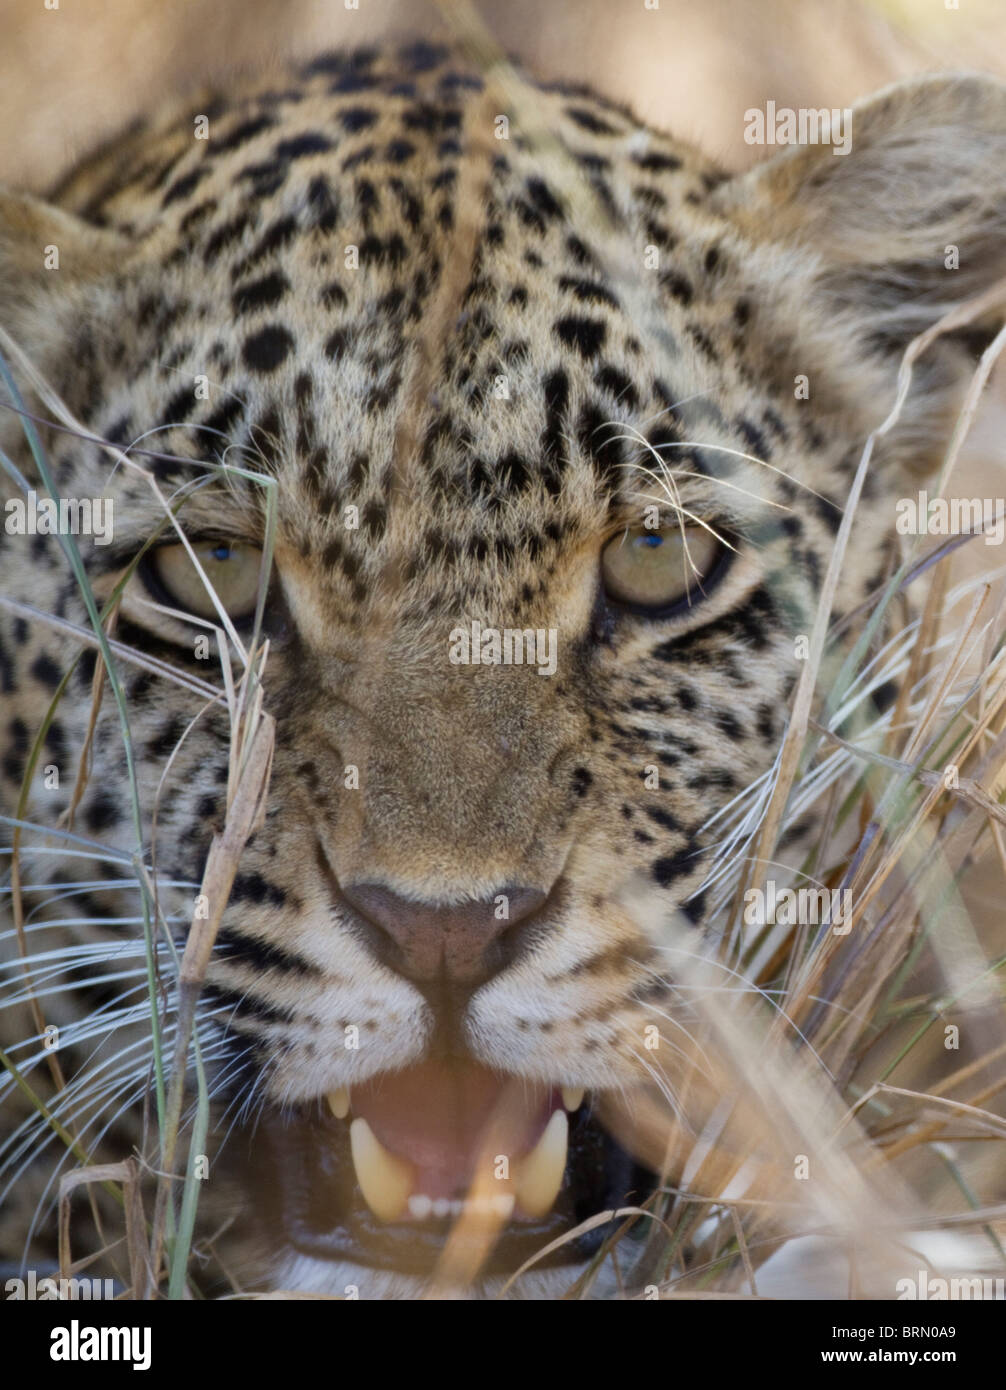 Tight portrait of a leopard snarling - Stock Image